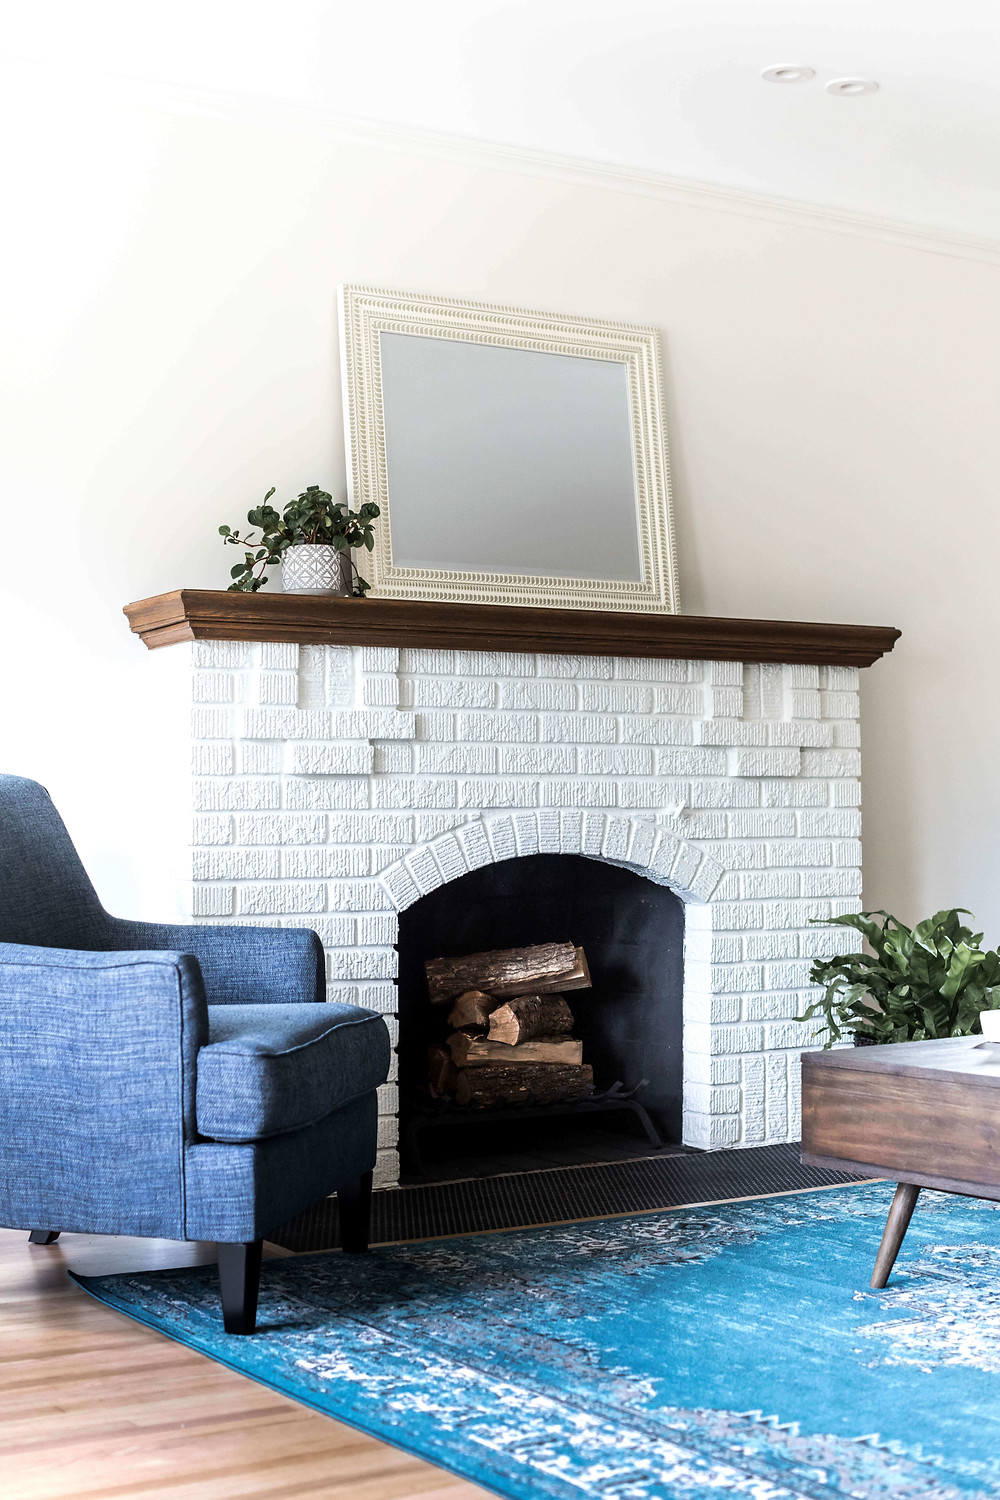 Tudor style living room with painted white brick fireplace, stained oak mantel and blue furnishings